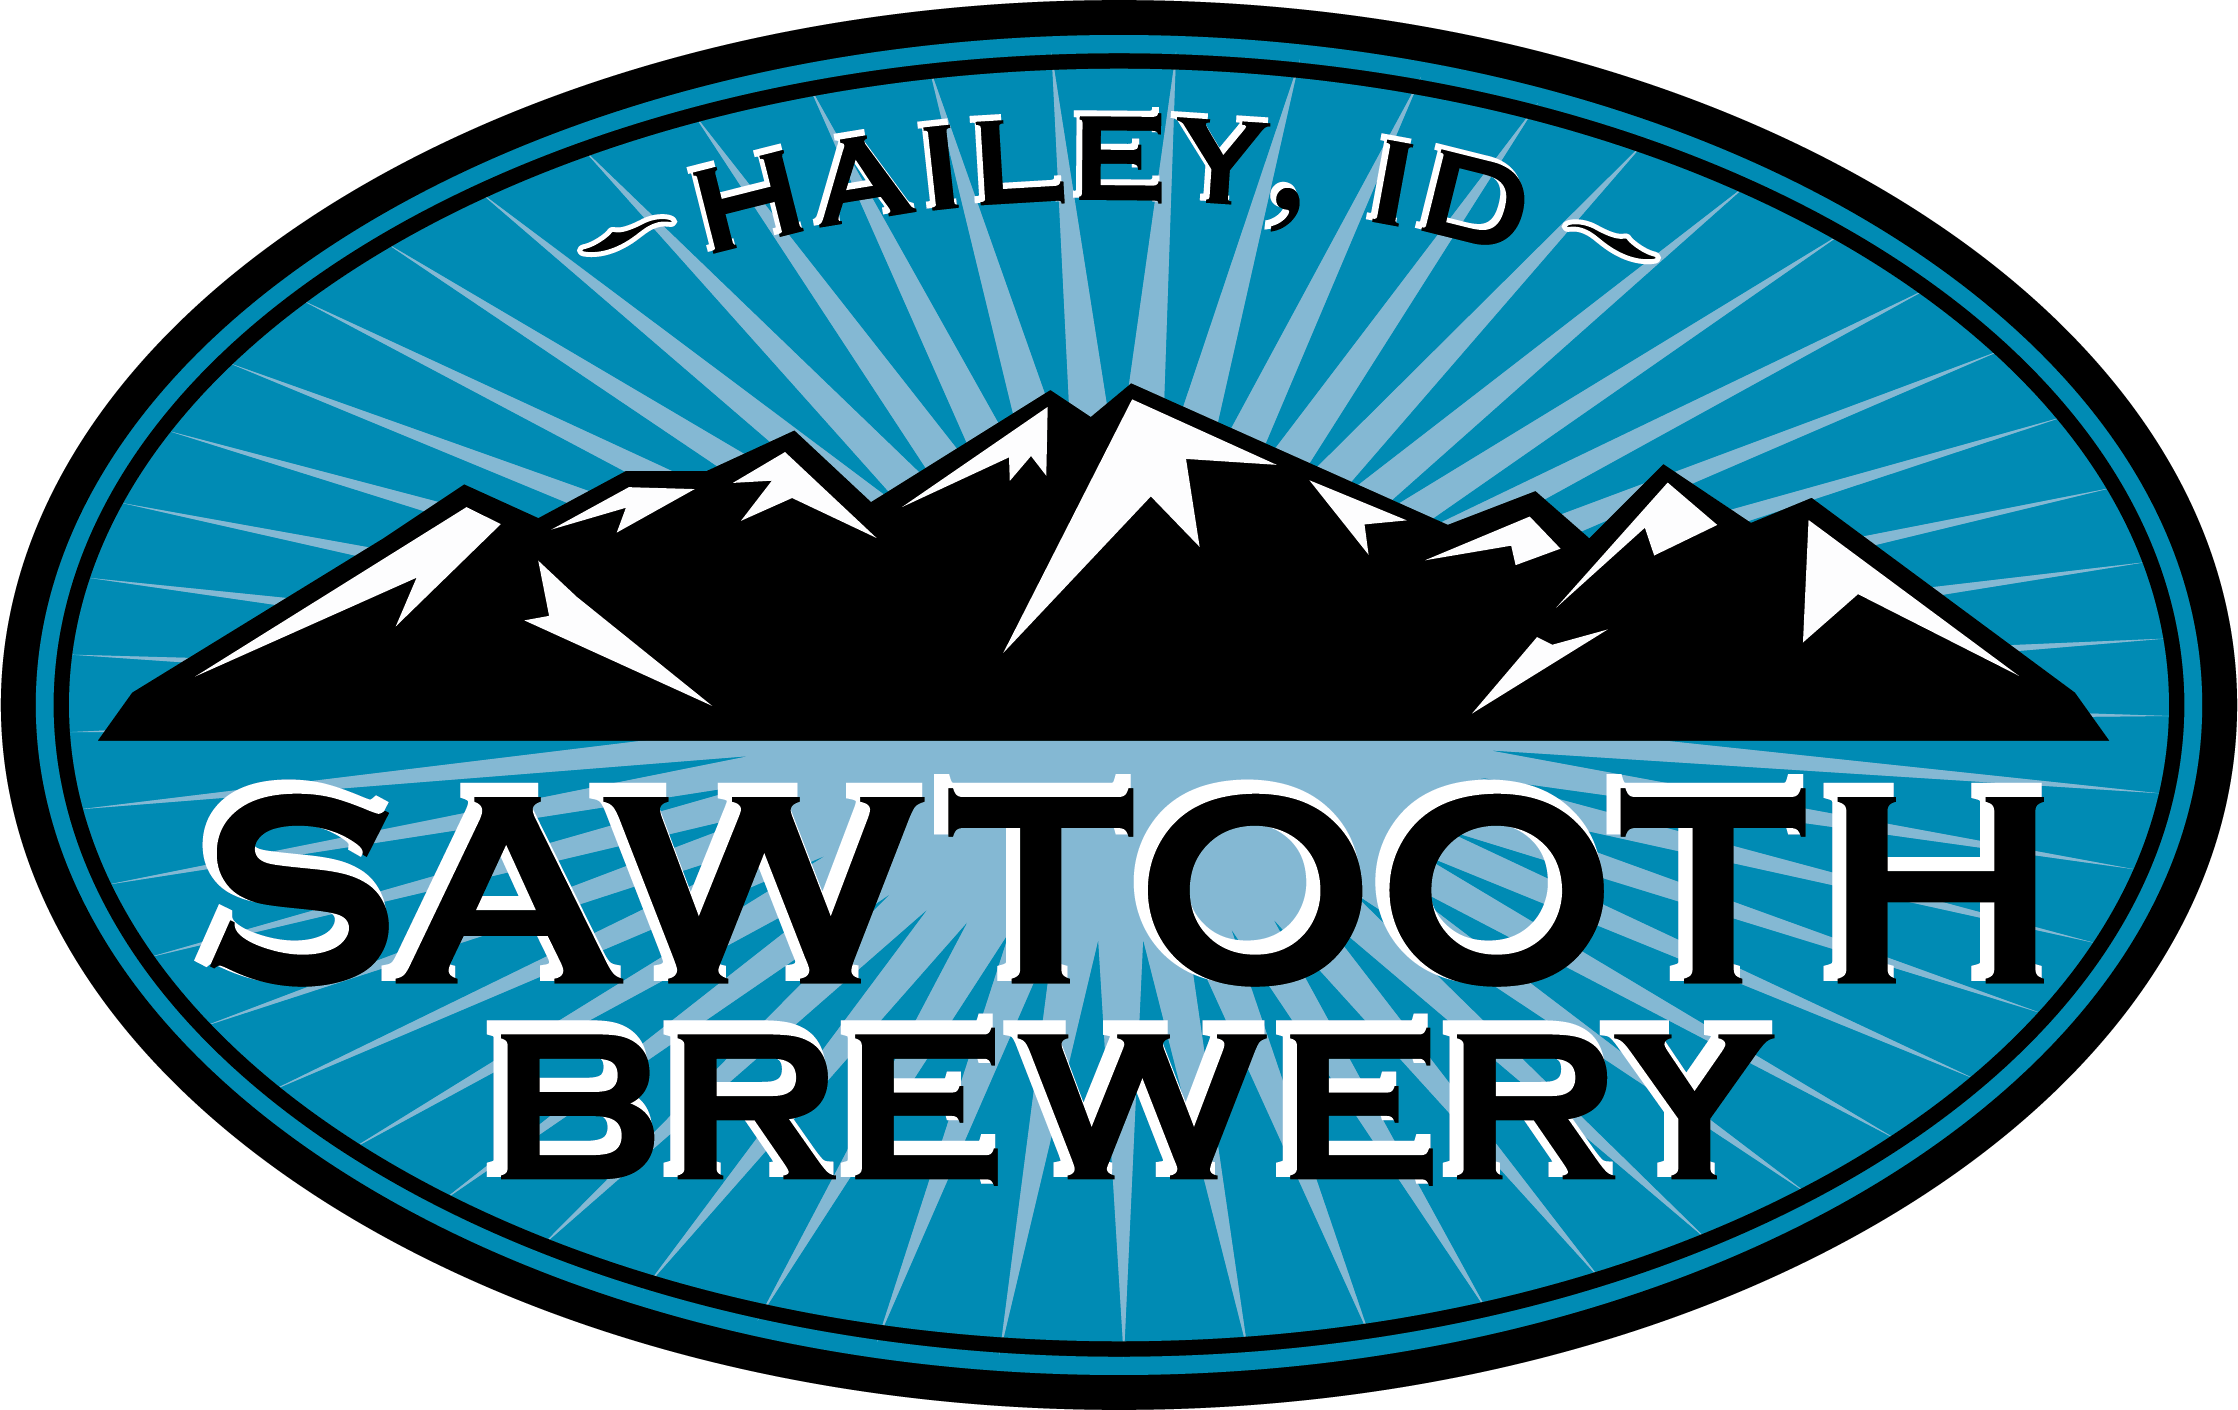 Sawtooth_Brewery